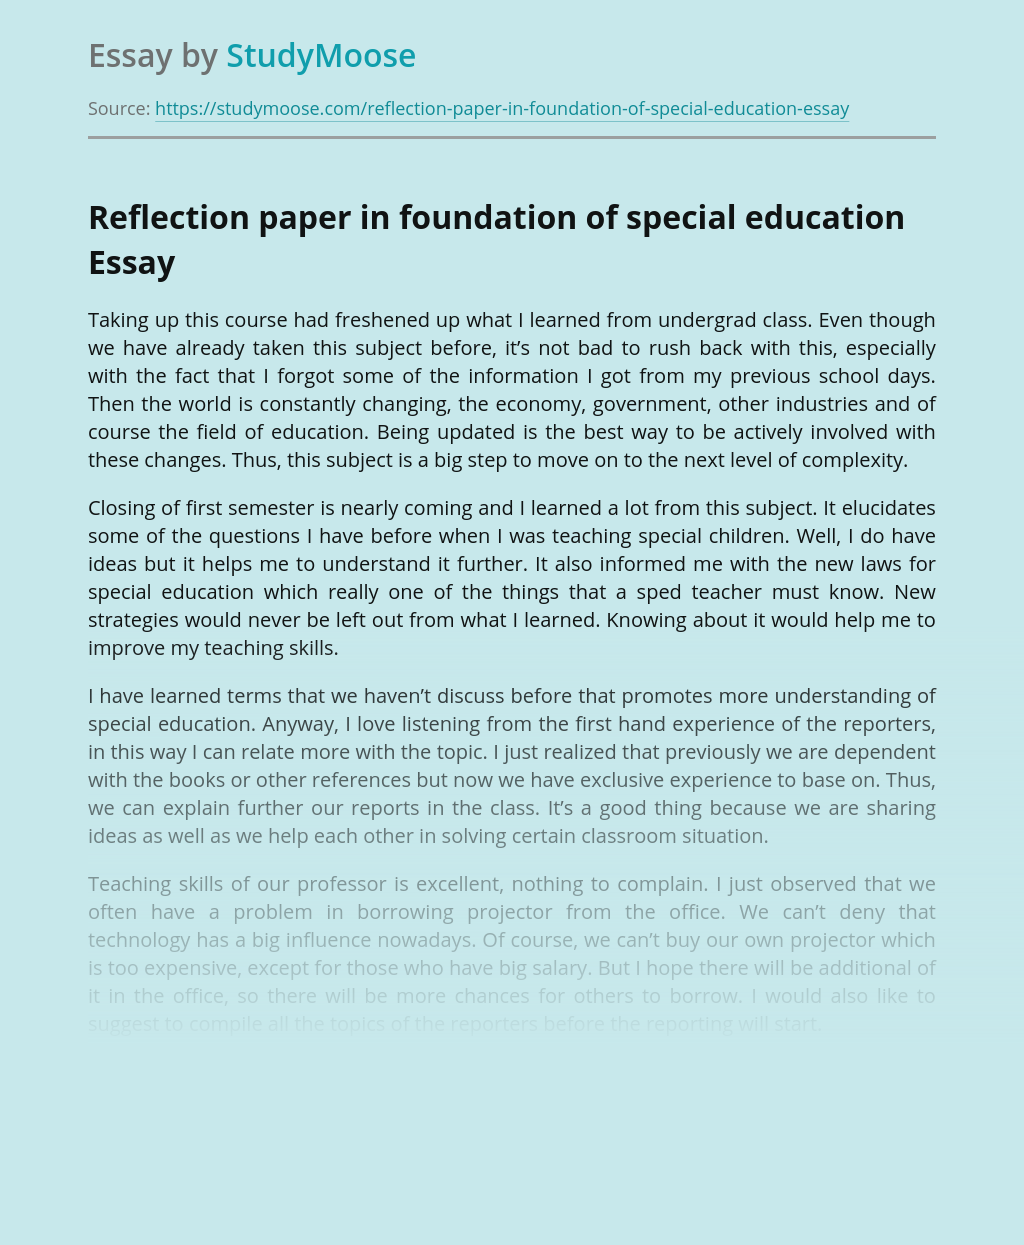 Reflection paper in foundation of special education